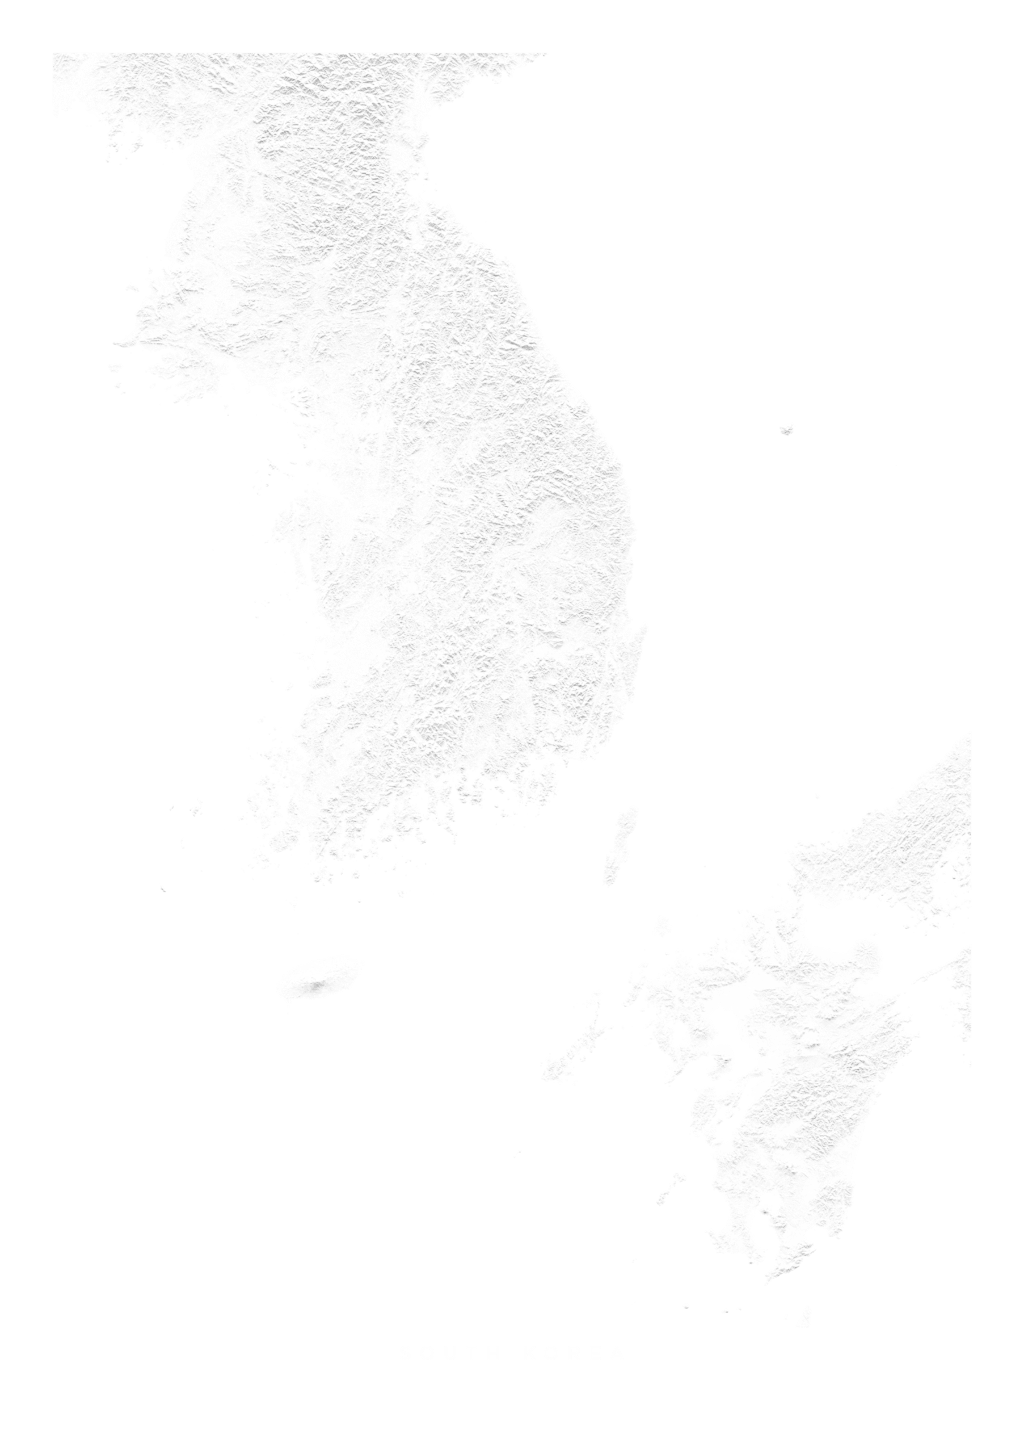 South Korea wall map